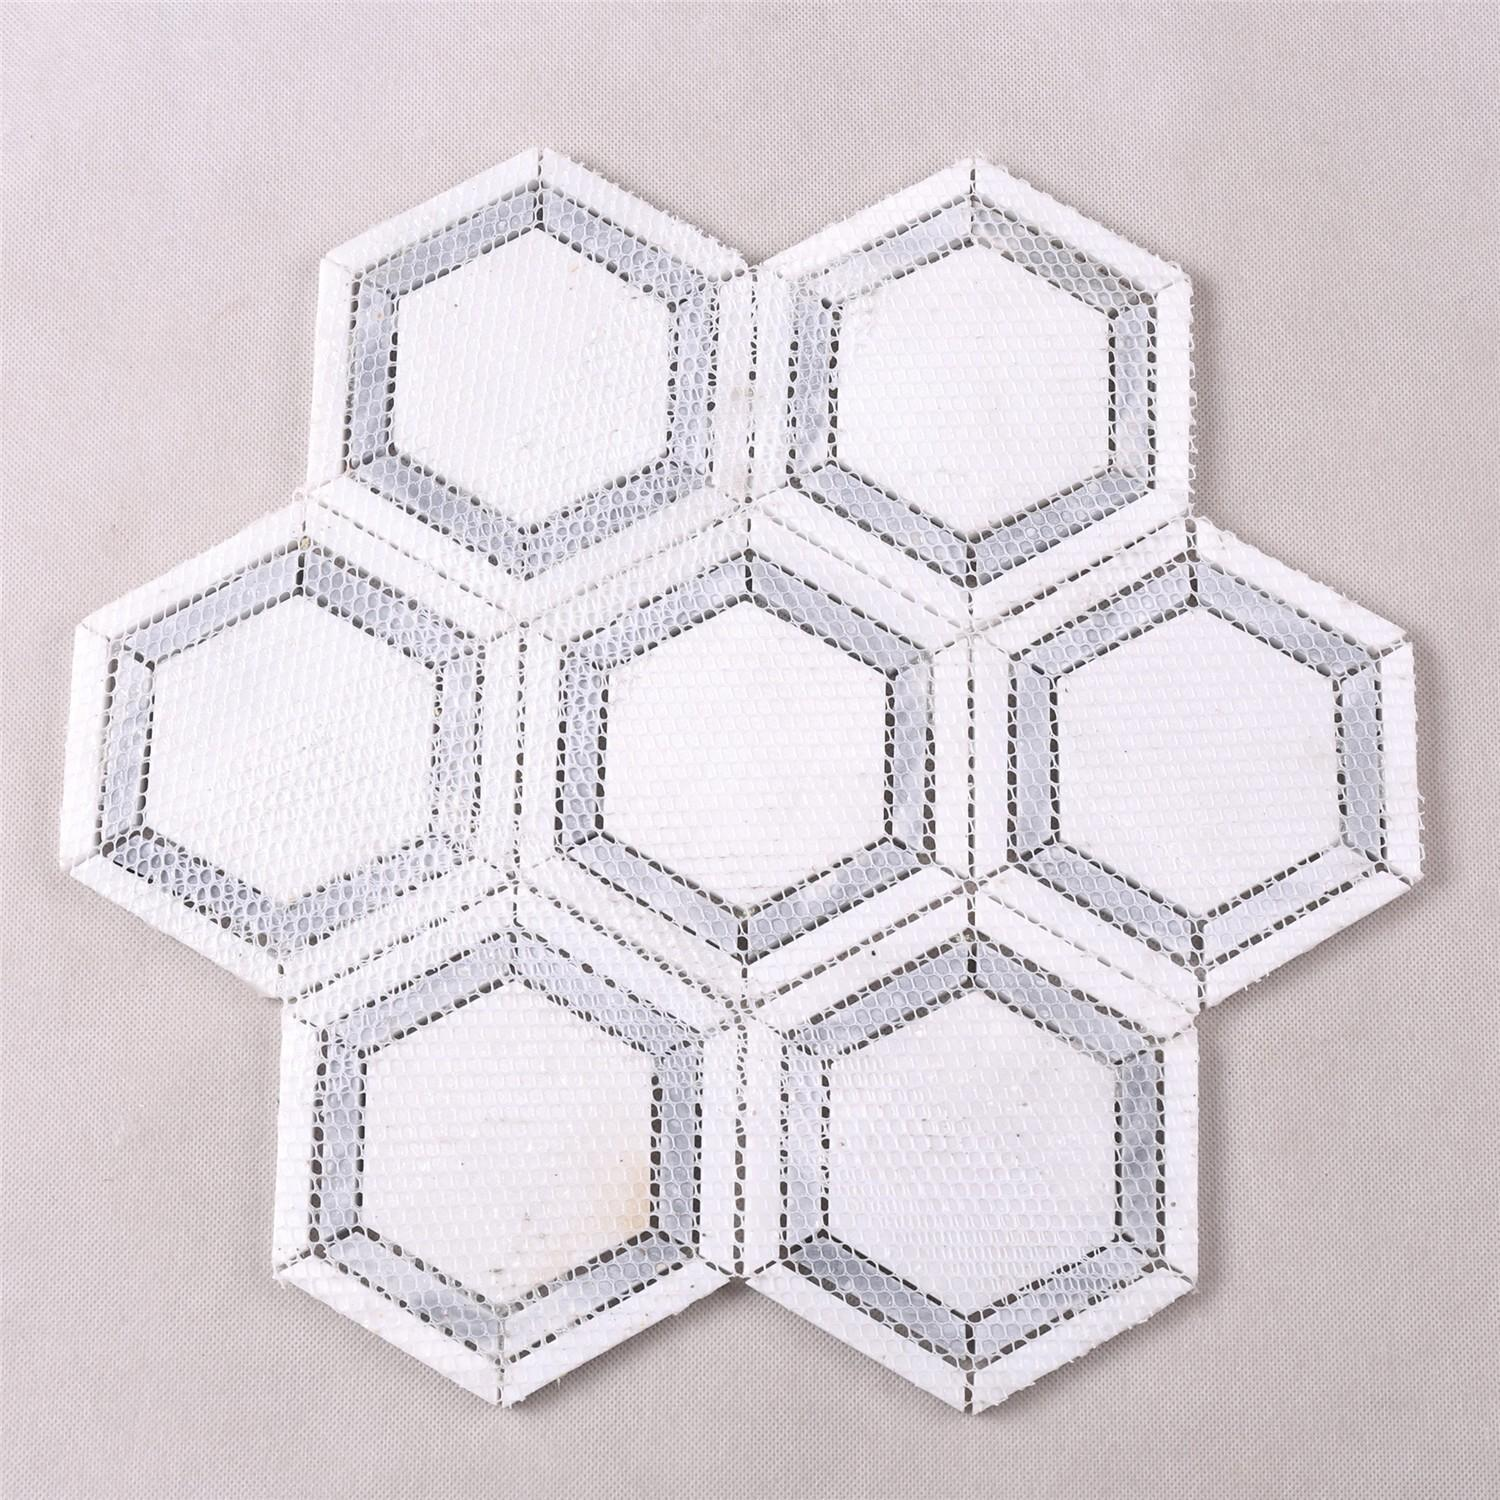 reliable crystal glass mosaic tiles suppliers white series for villa-5